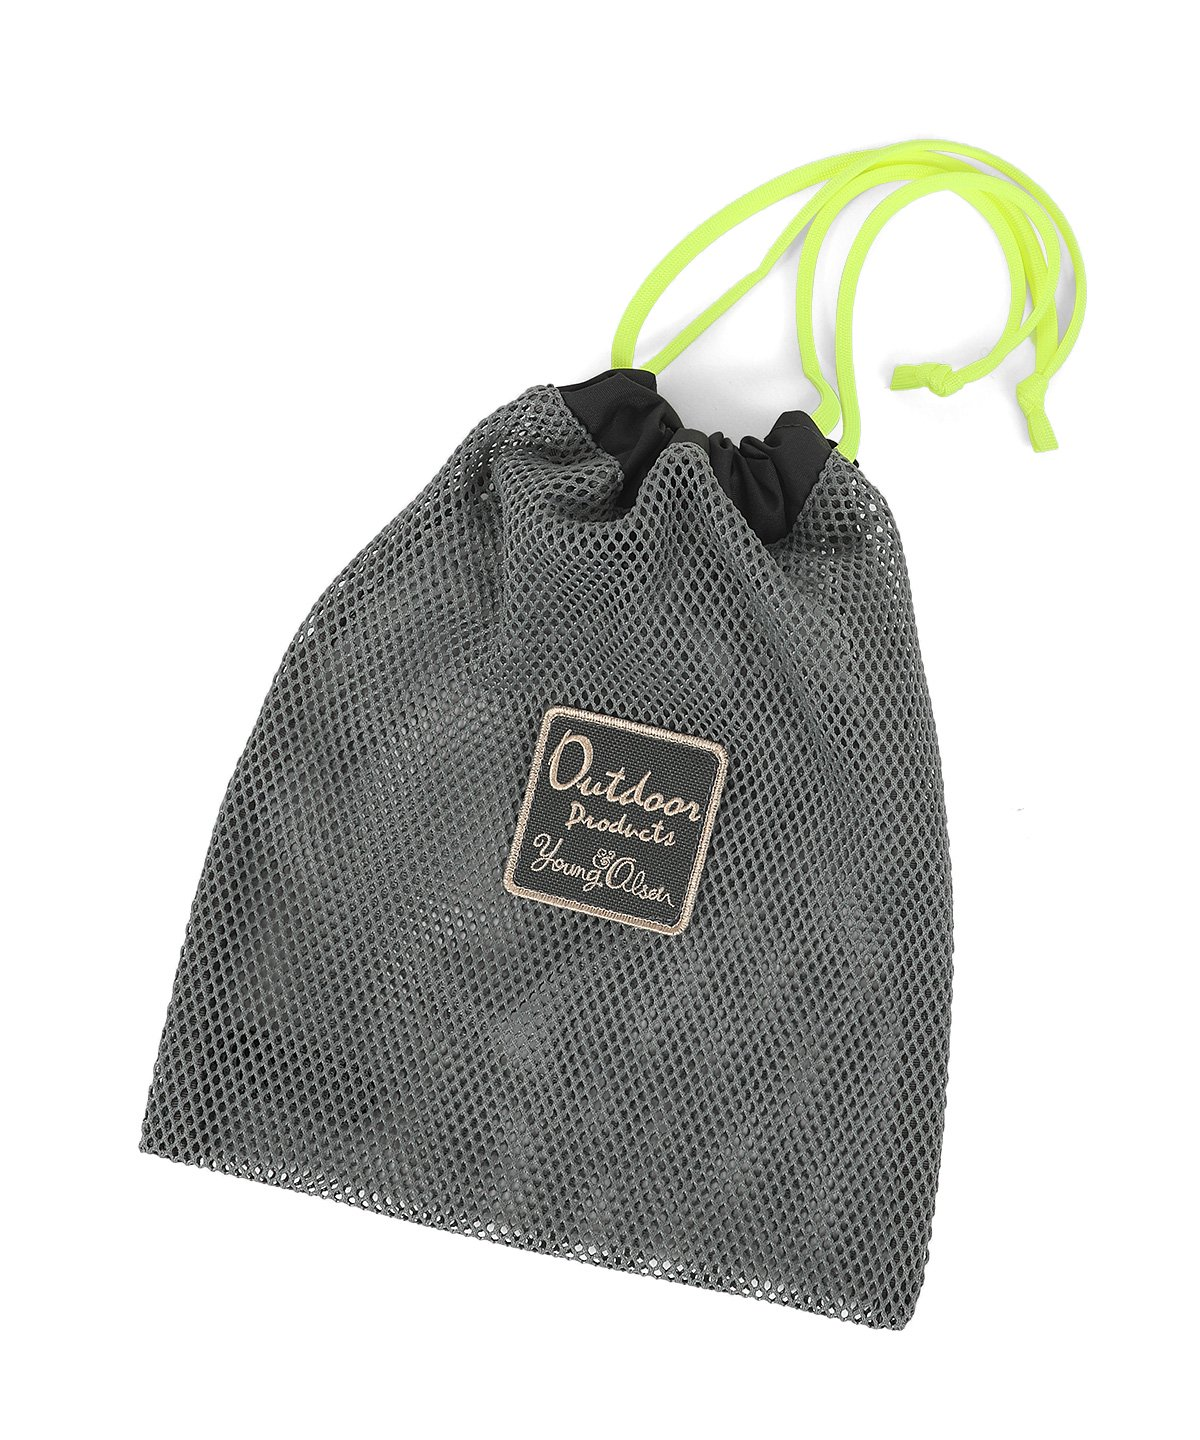 OUTDOOR MESH POUCH